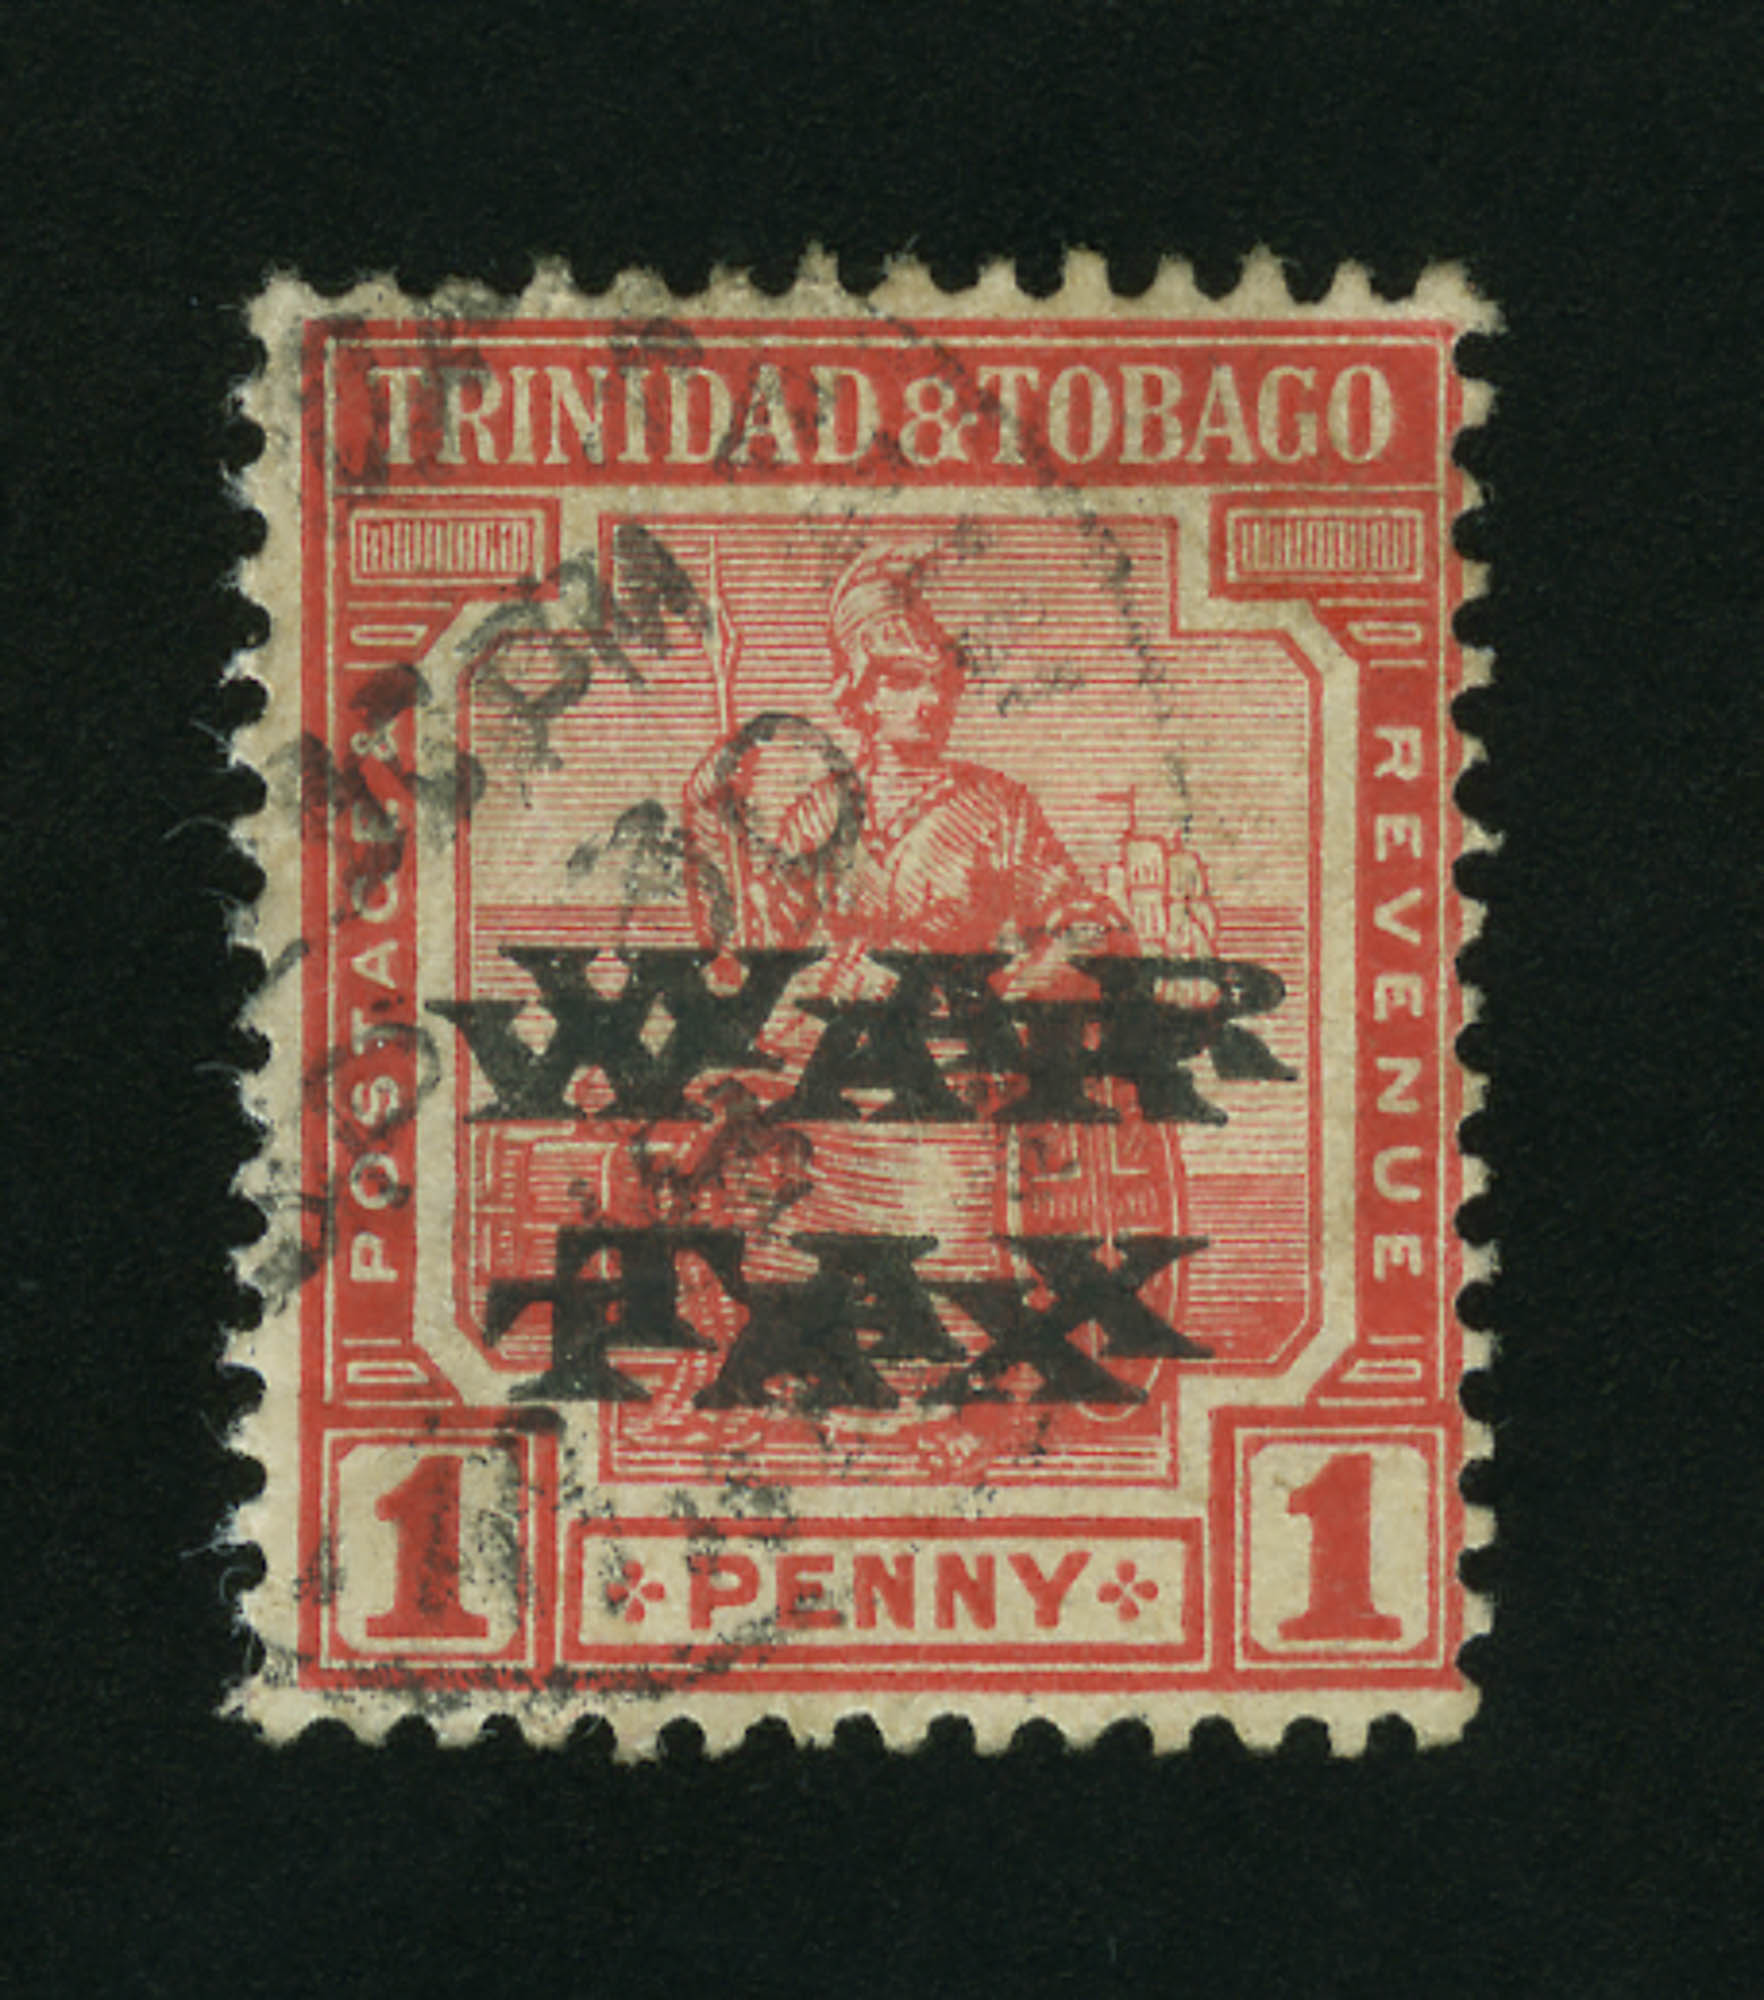 Lot image - Trinidad and Tobago War Tax 1918 1 Penny Double Overprint Scott MR11a